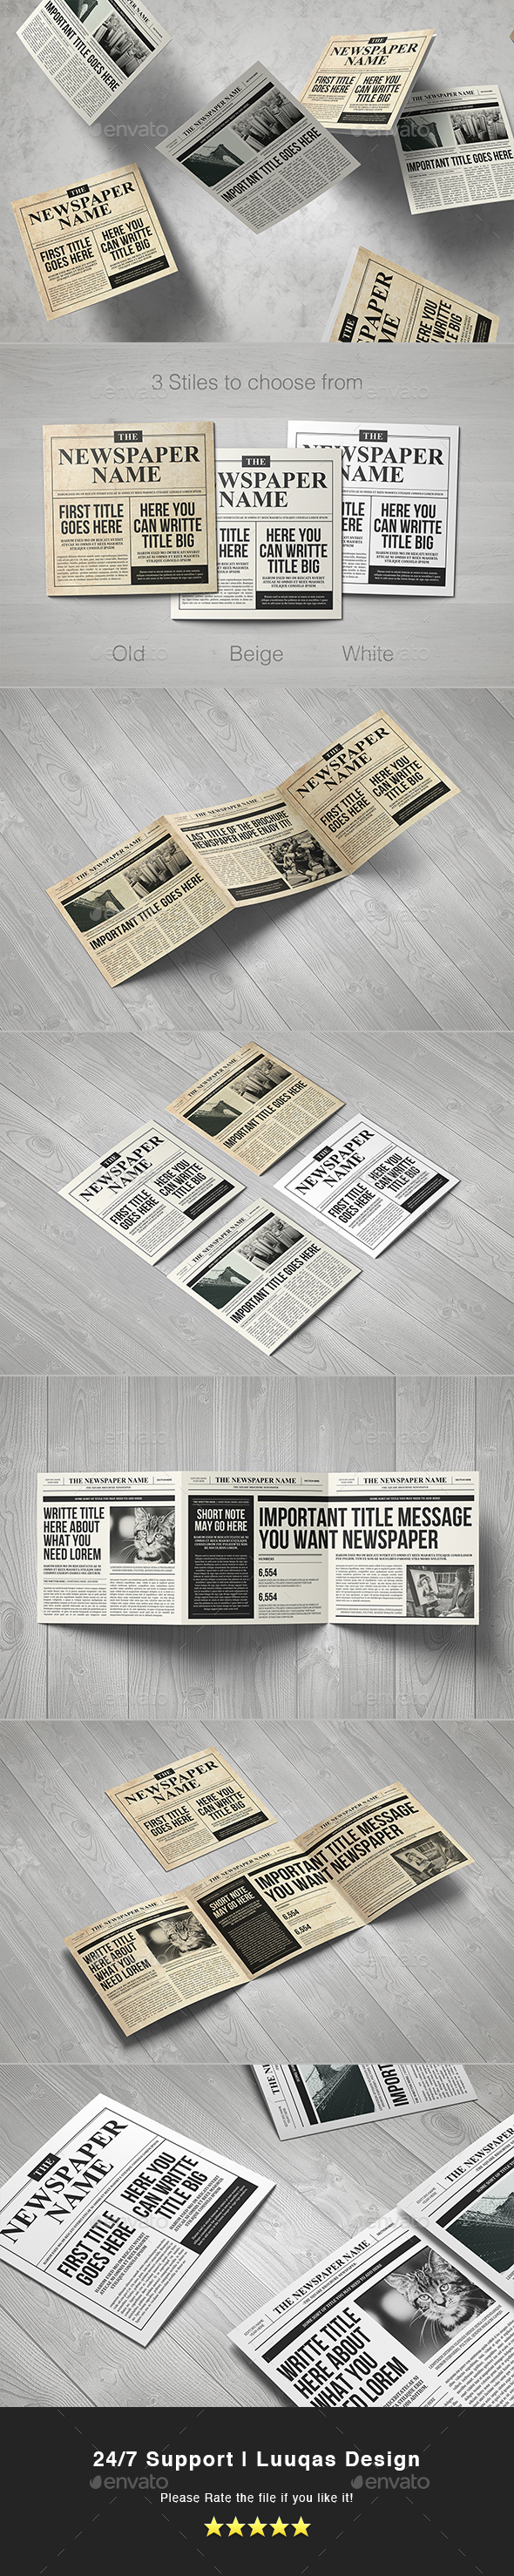 Newspaper Brochure Trifold - Brochures Print Templates